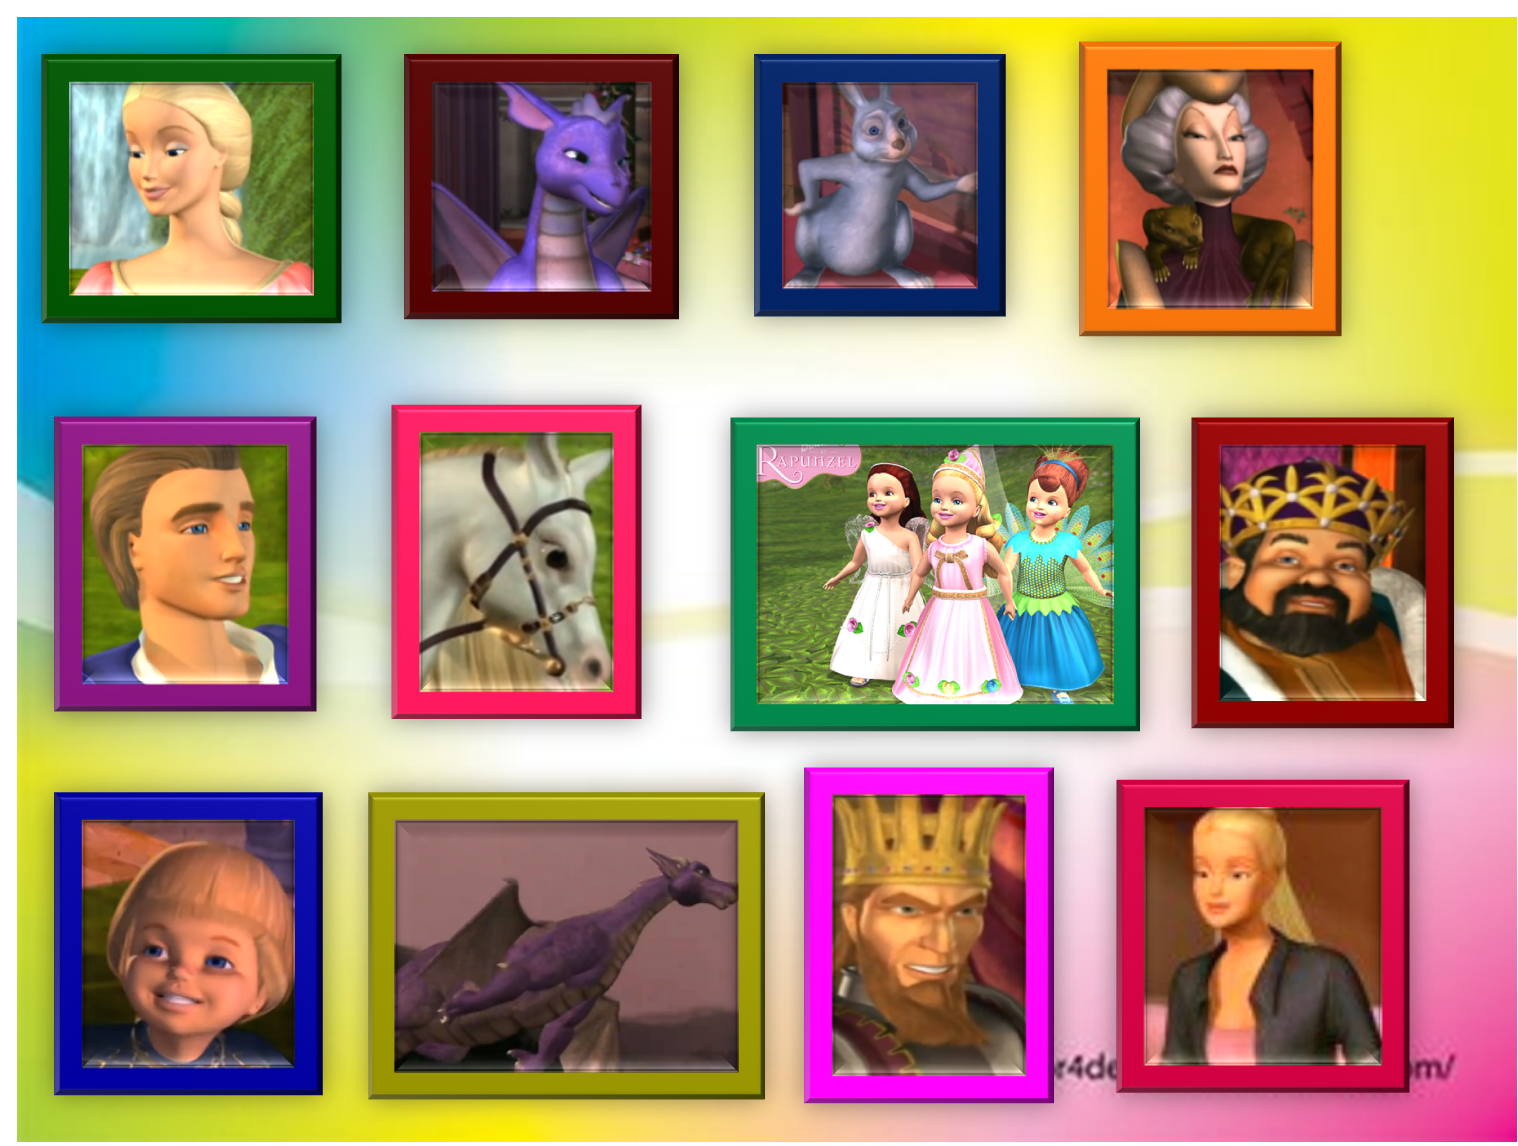 Barbie Movies rapunzel characters in wall frames by coolgirl15